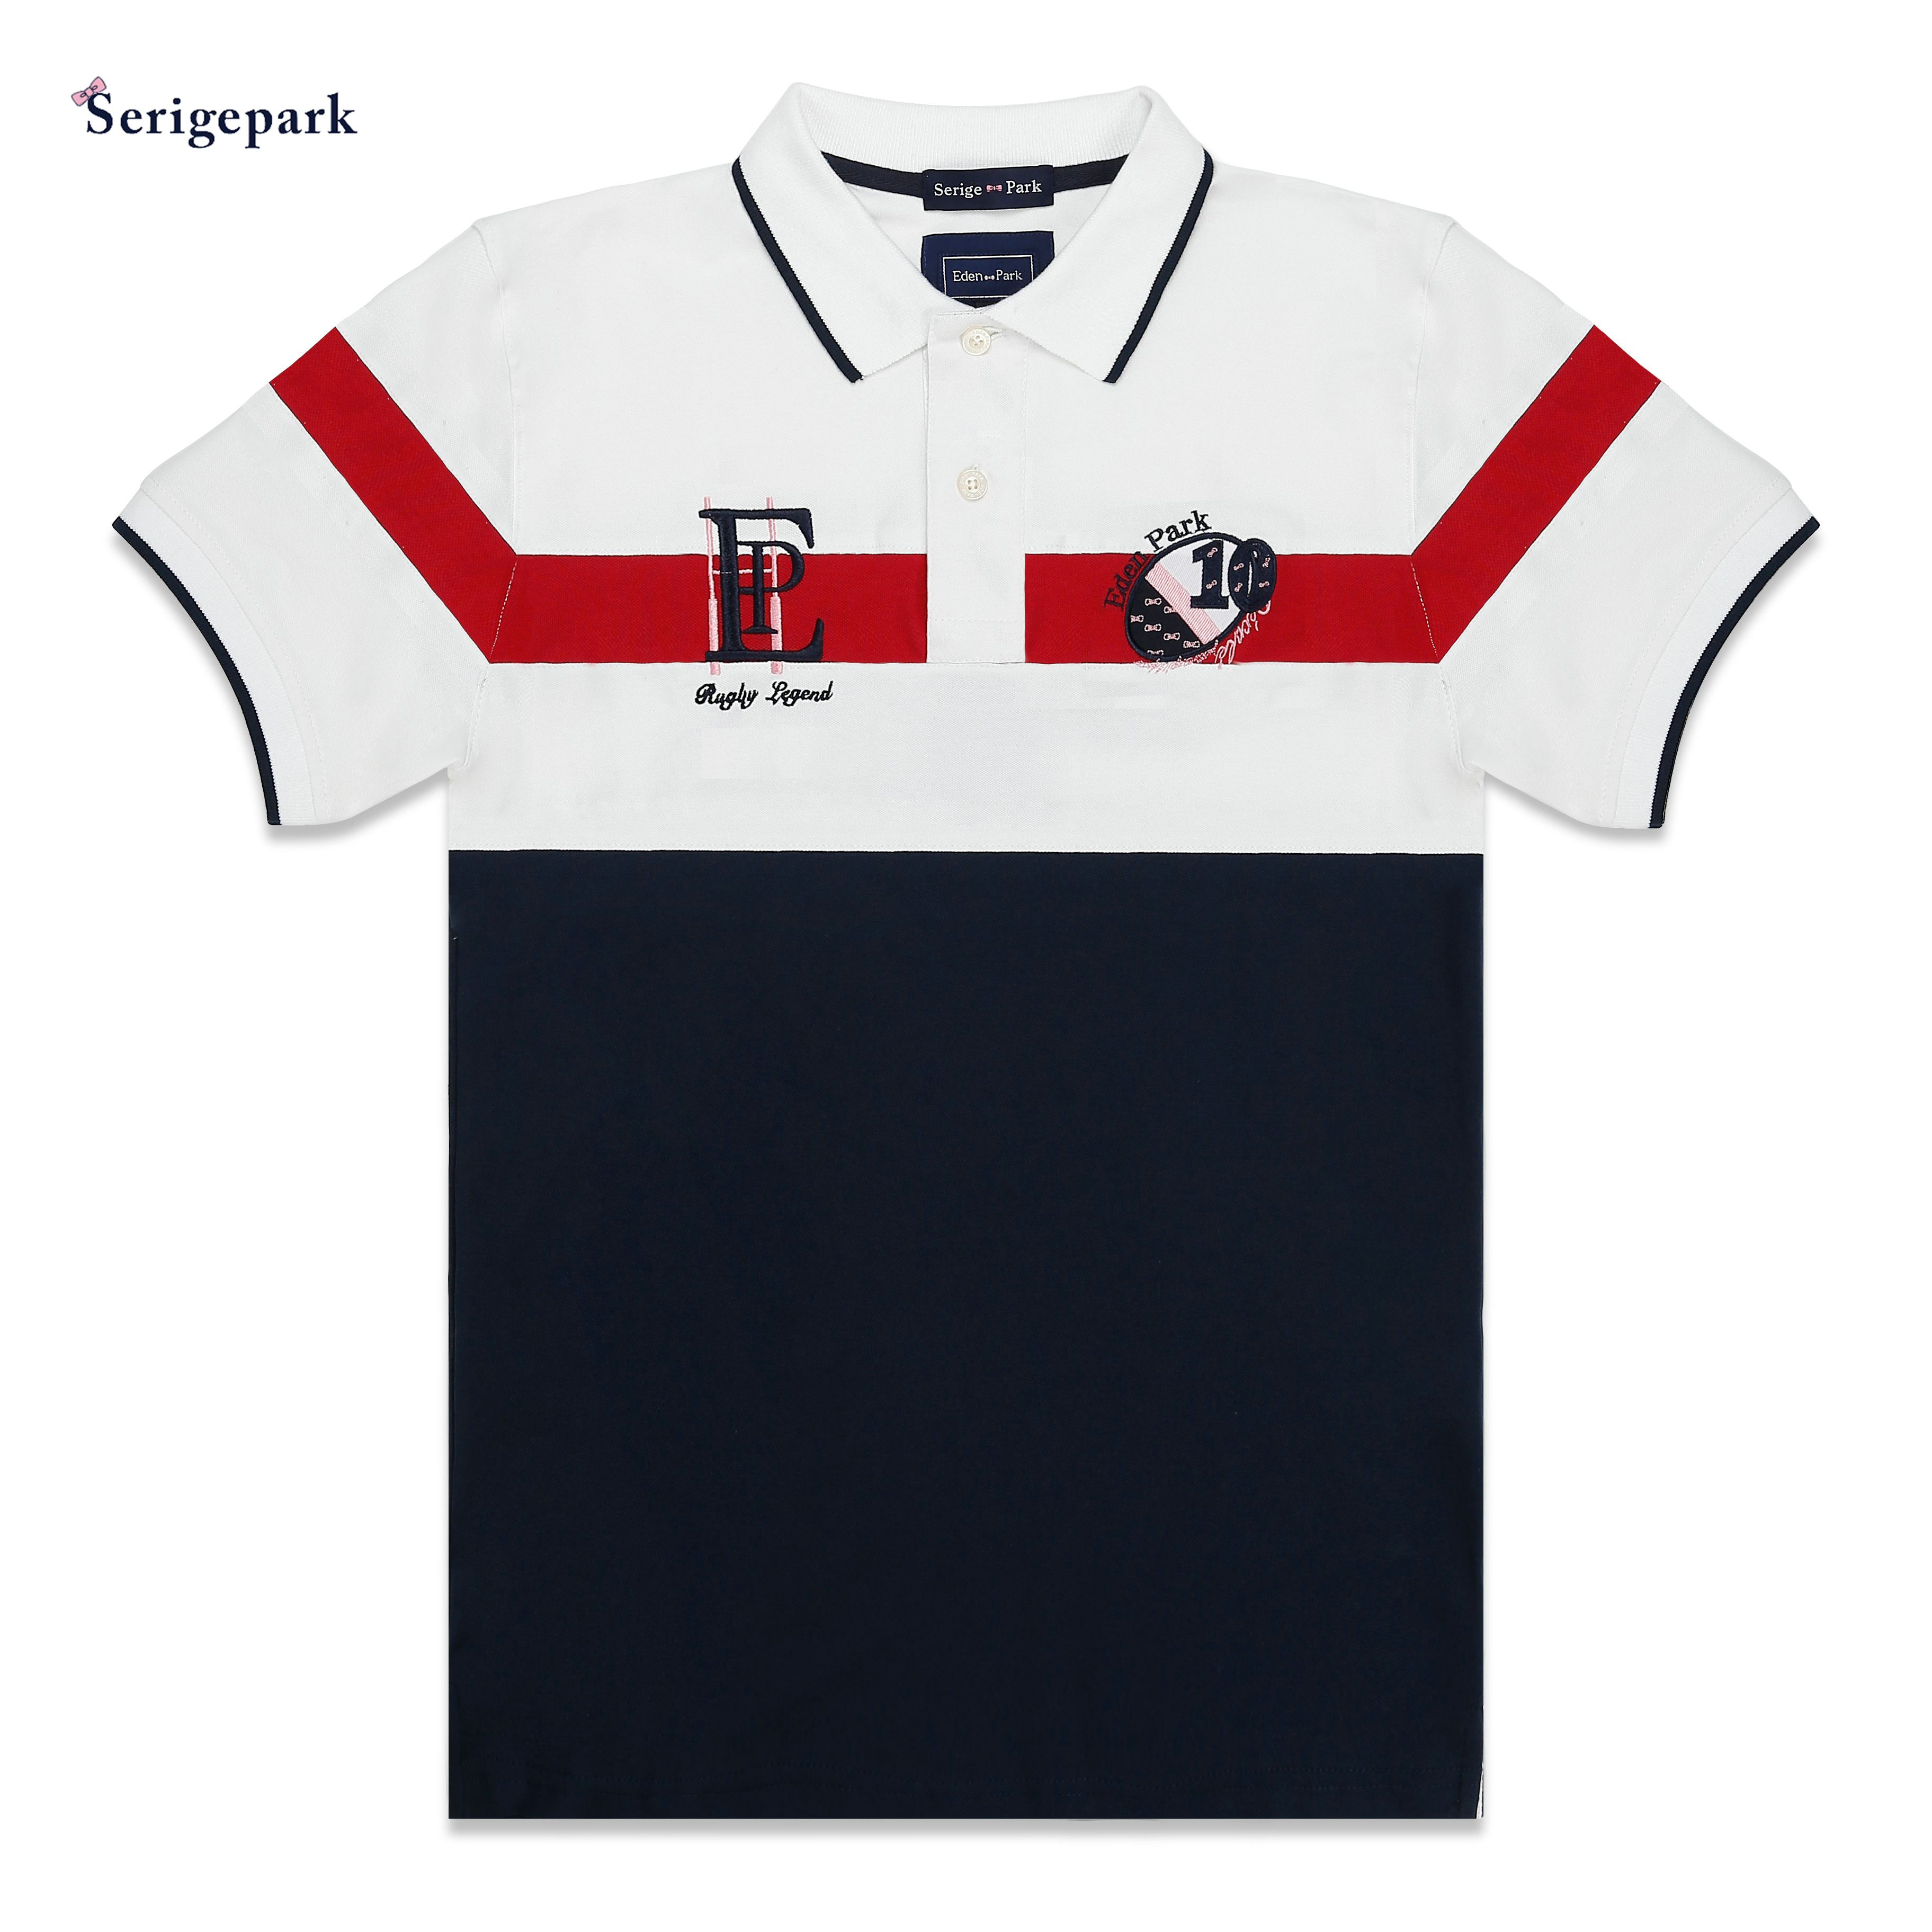 2019 FASHION PATTERN NEW MAN POLO SHIRT SHORT SLEEVE WITH HIGH QUALITY MATERIAL SERIGE EDEN PARK WITH SUPERIOR COTTON MATERIAL(China)